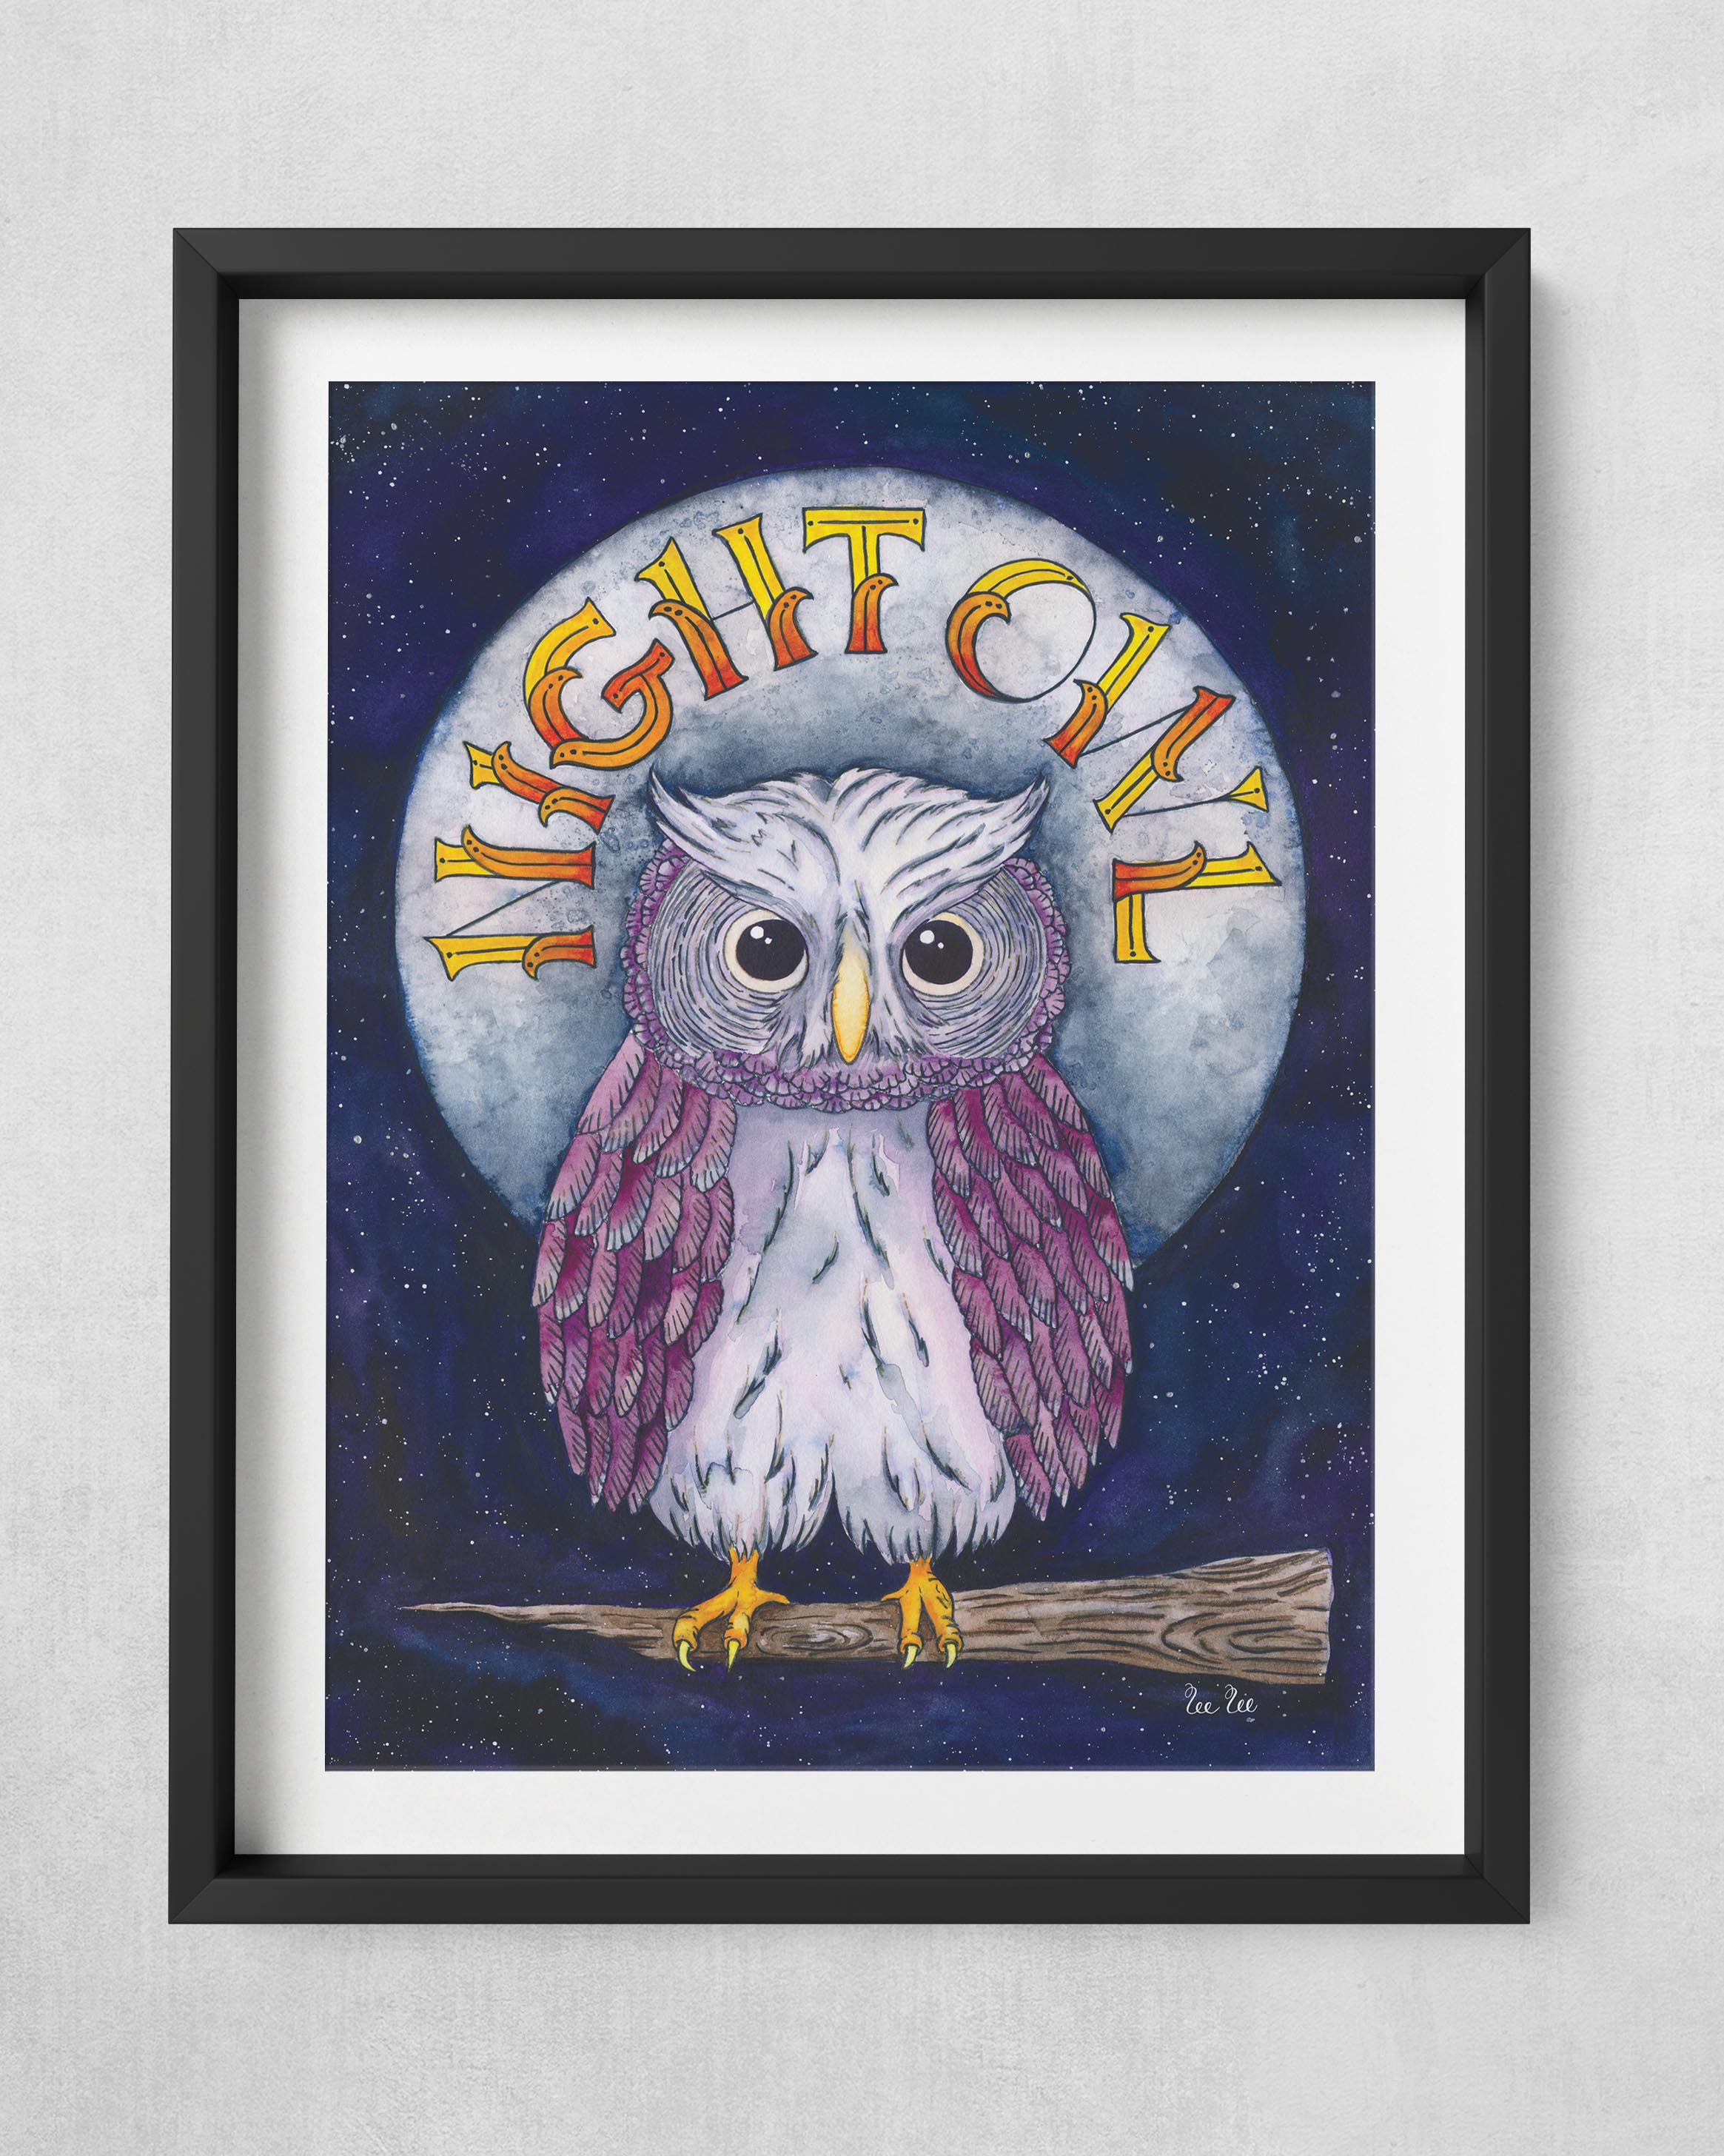 NightOwl-12x16Print-18x14frame-BlackFram